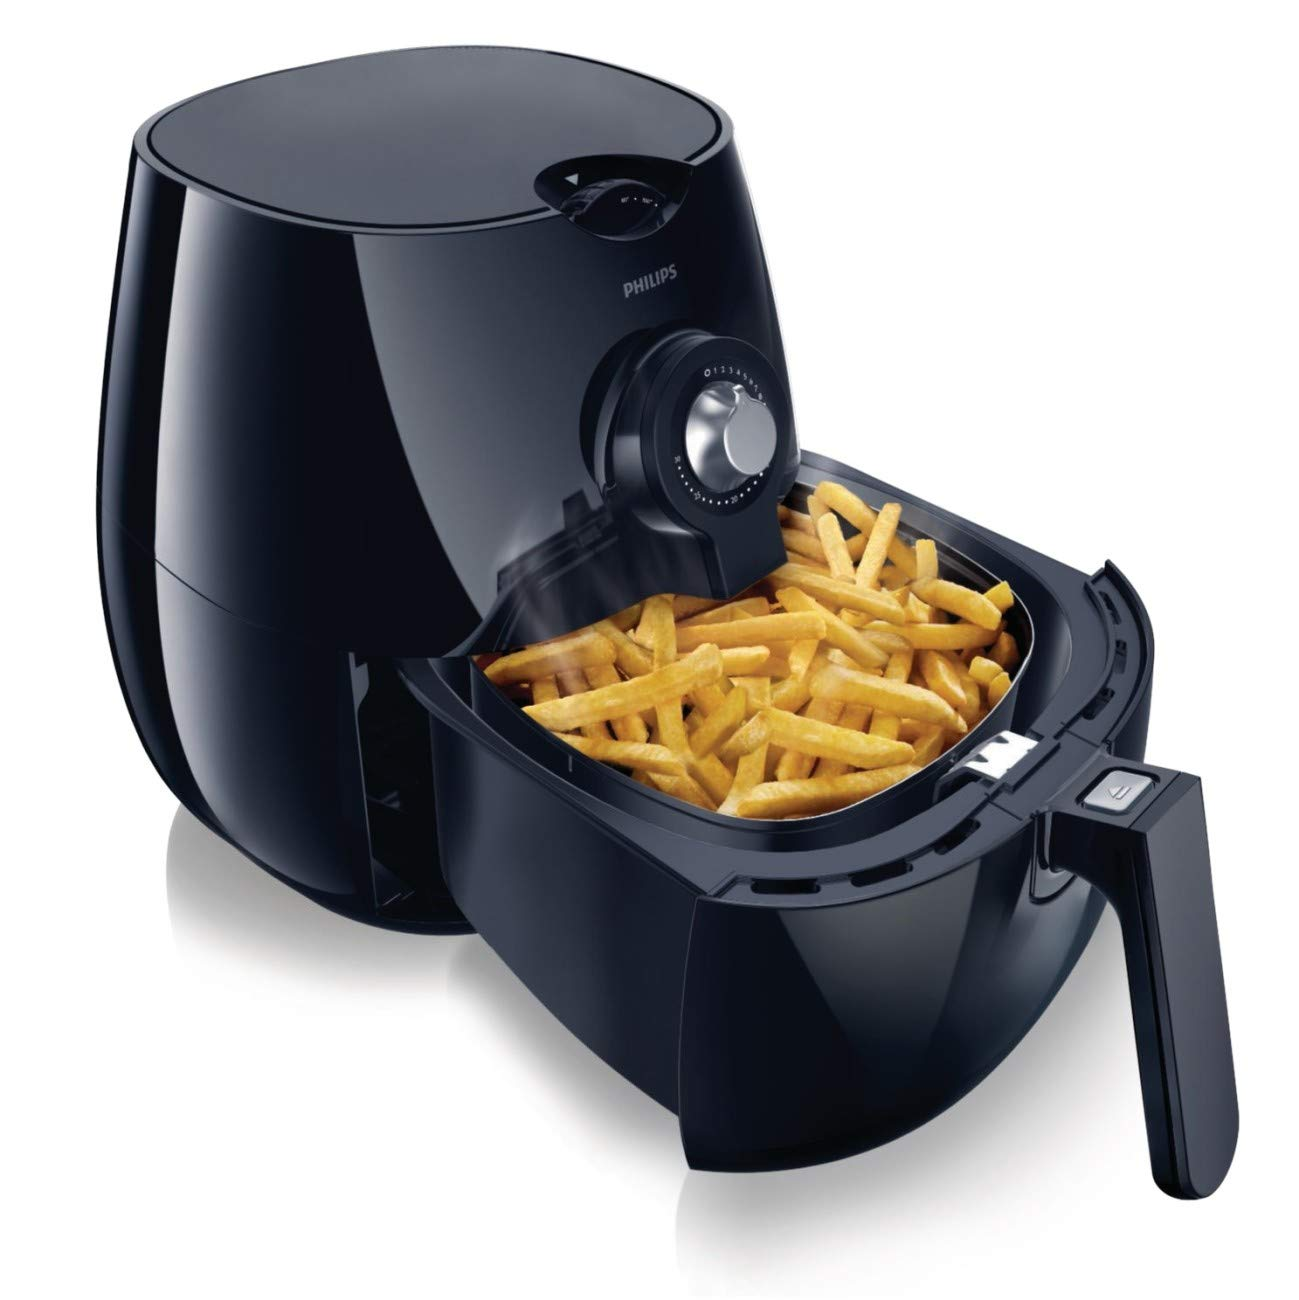 Philips HD9220 29 Airfryer, 1.8lb 2.75qt, Black